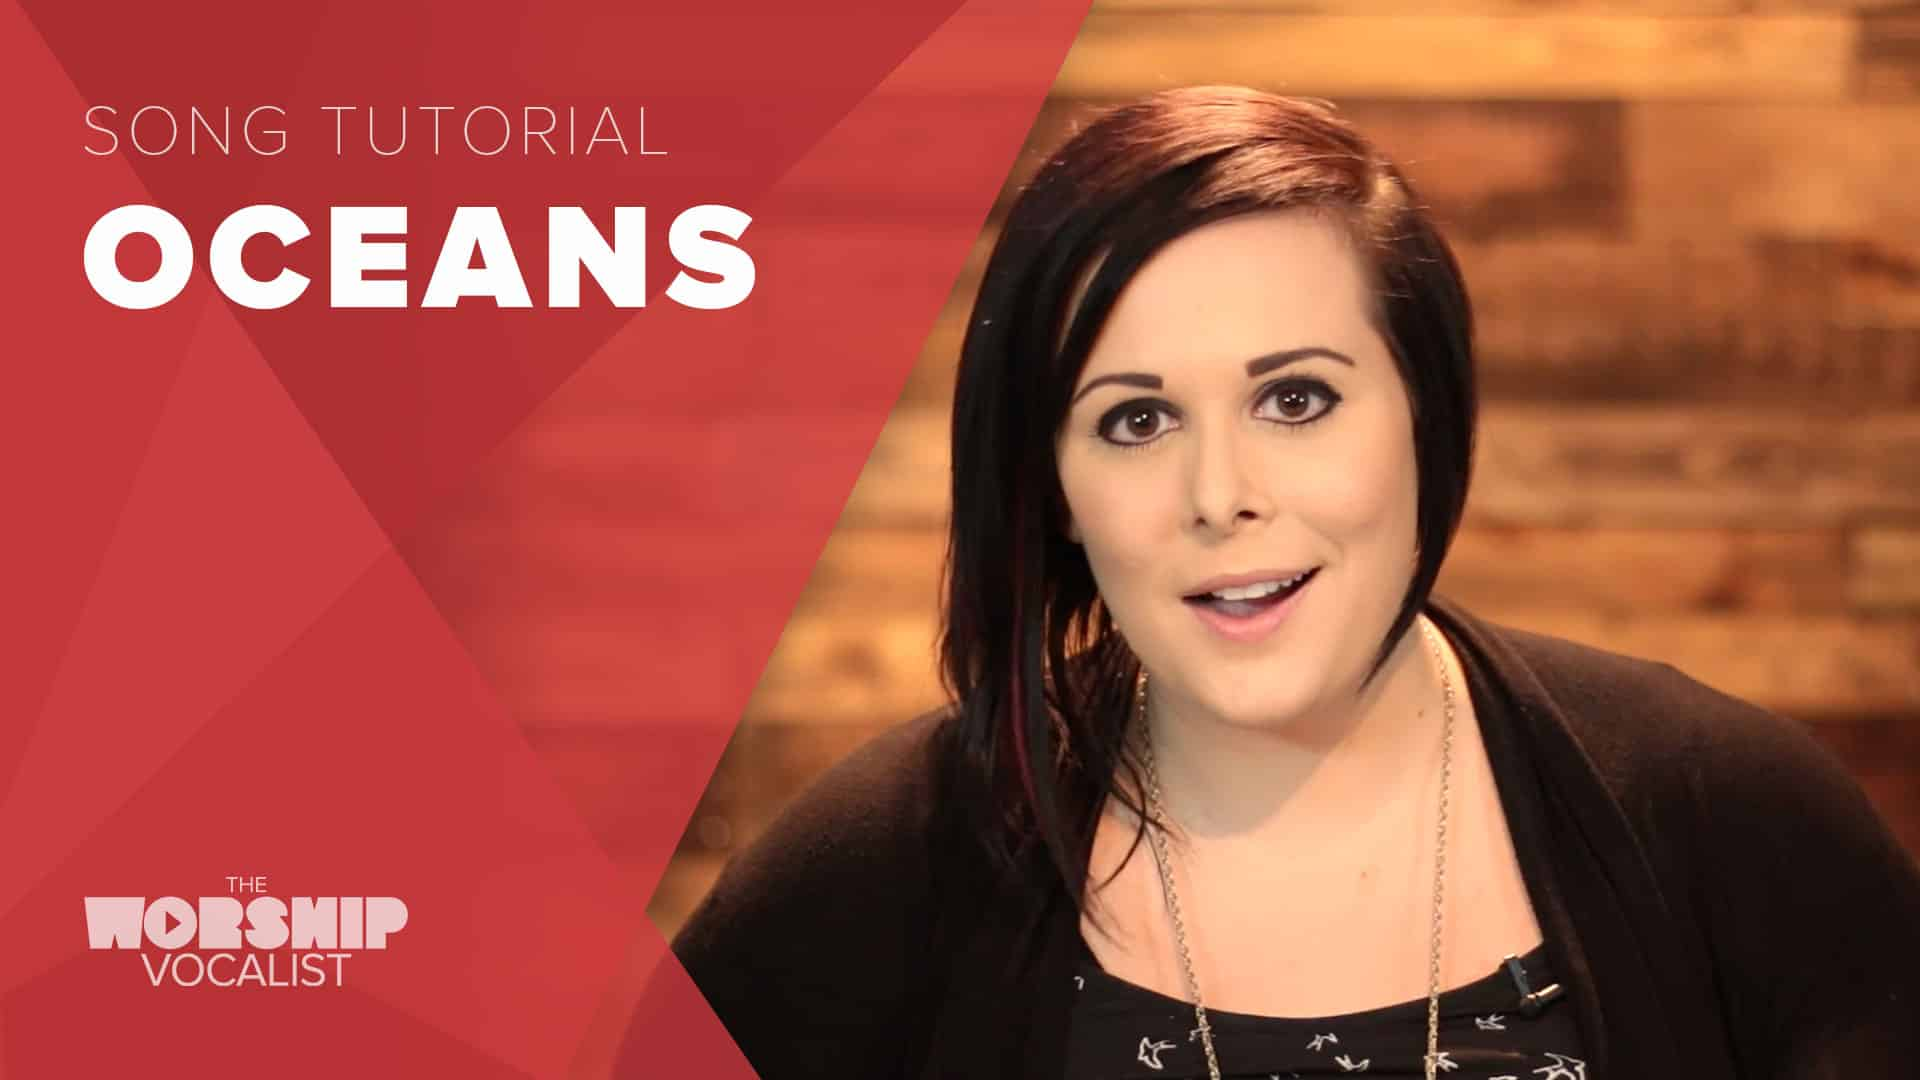 learn how to sing Oceans like Hillsong and Taya Smith